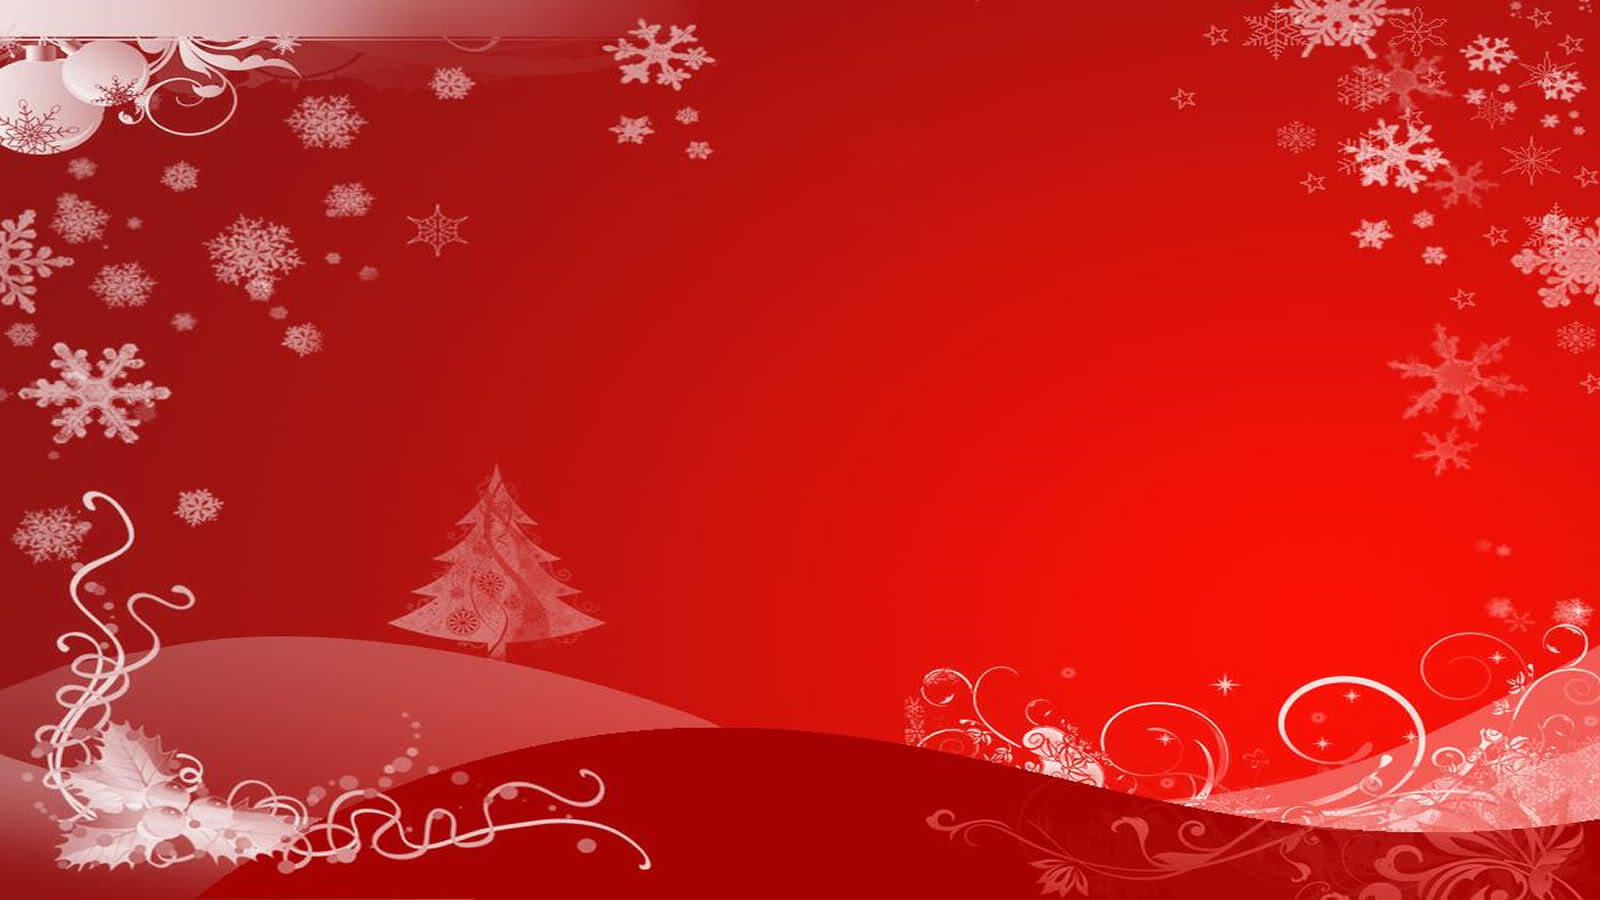 Free download Special Red Christmas Backgrounds Full HD Pictures